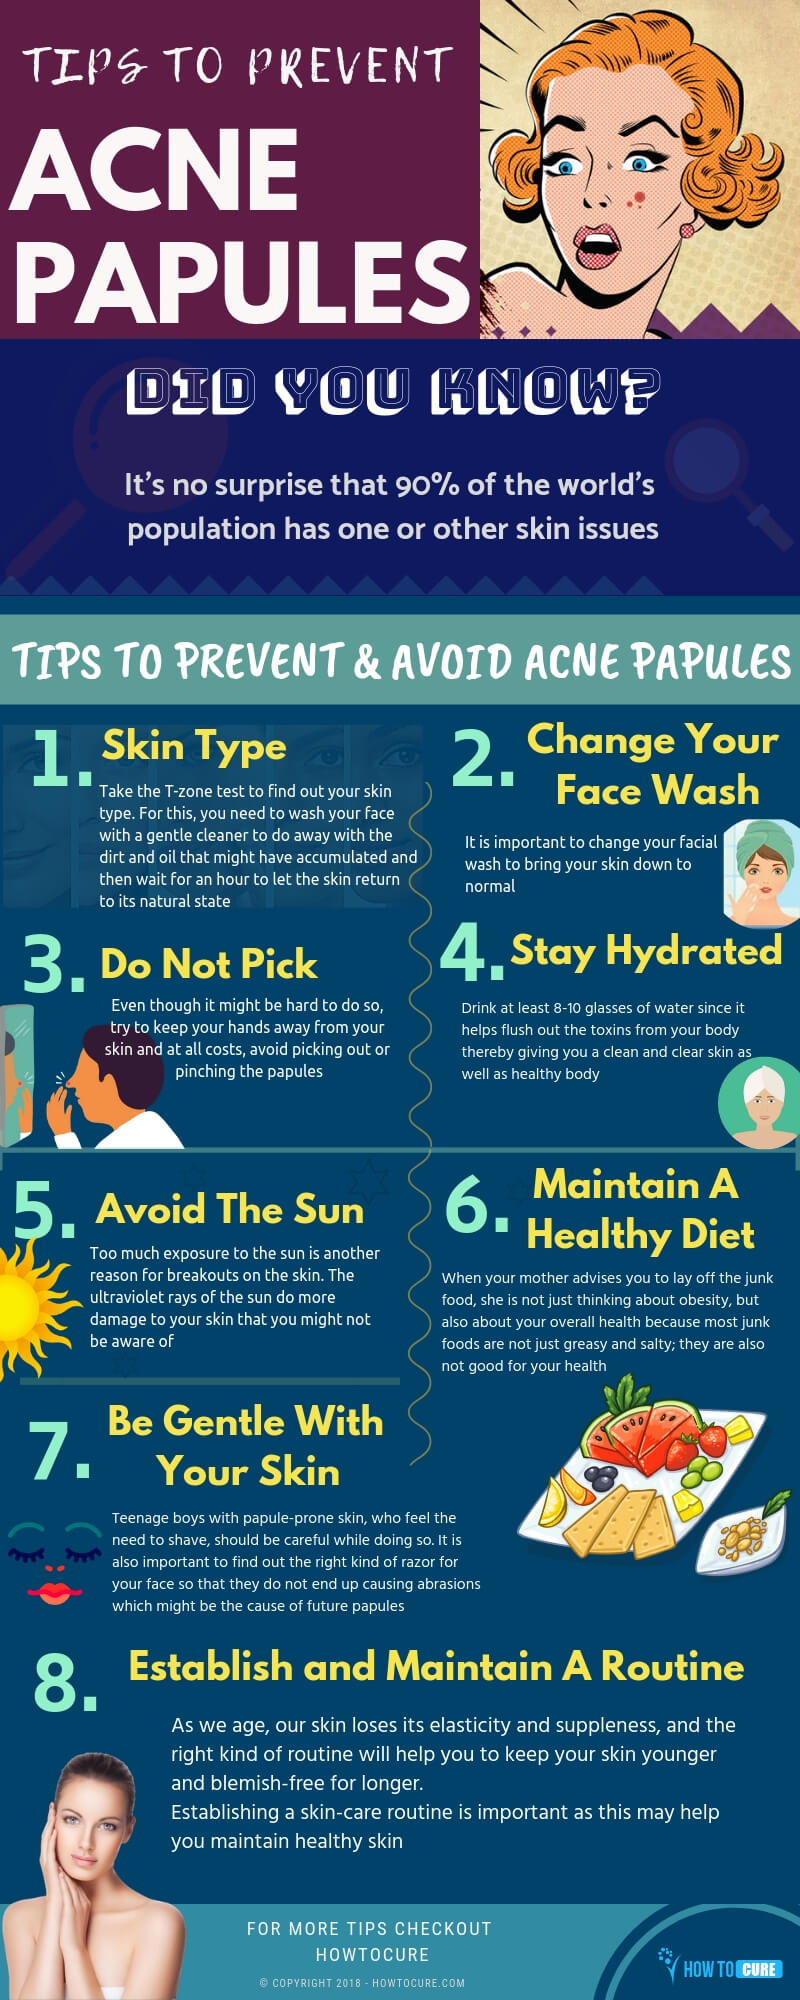 tips to prevent acne papules infographic